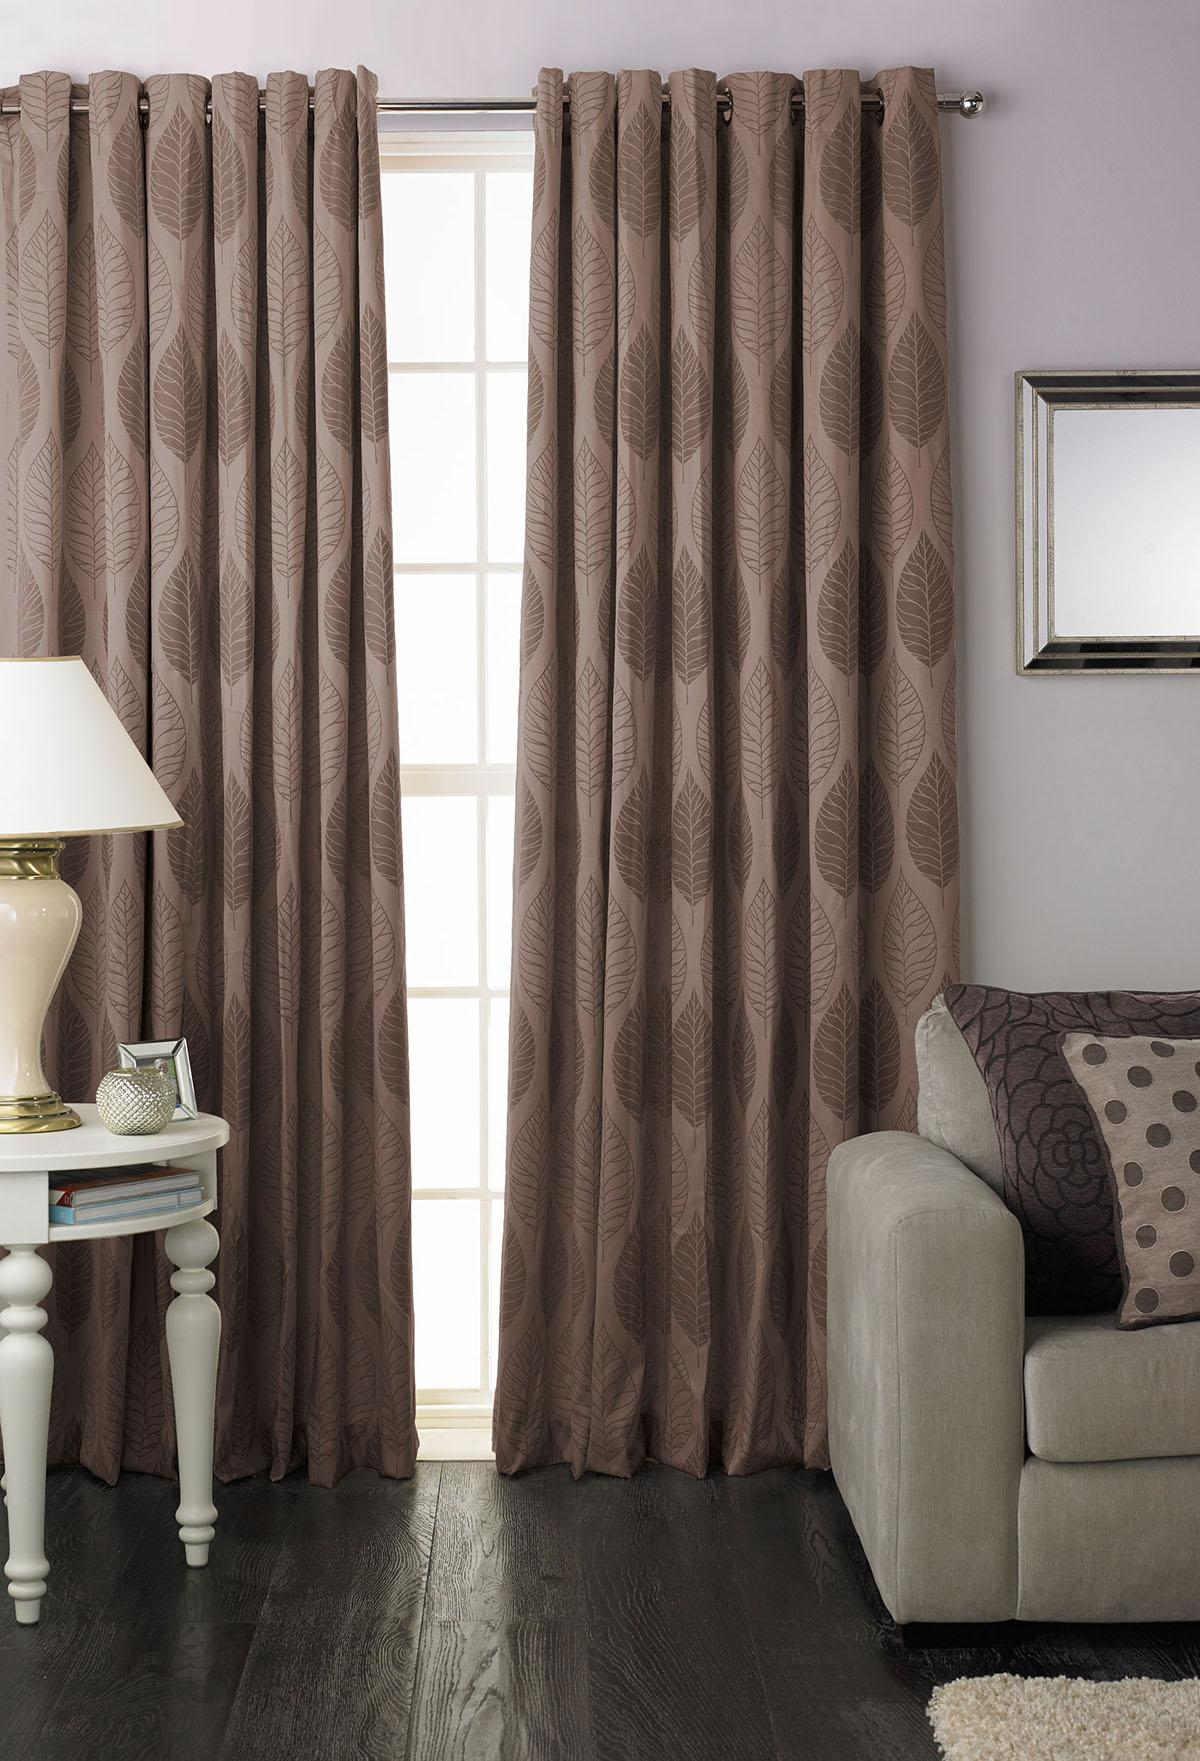 Curtains Beige Eyelet Curtains Riveting Beige Lined Eyelet In Brown Eyelet Curtains (Image 6 of 25)